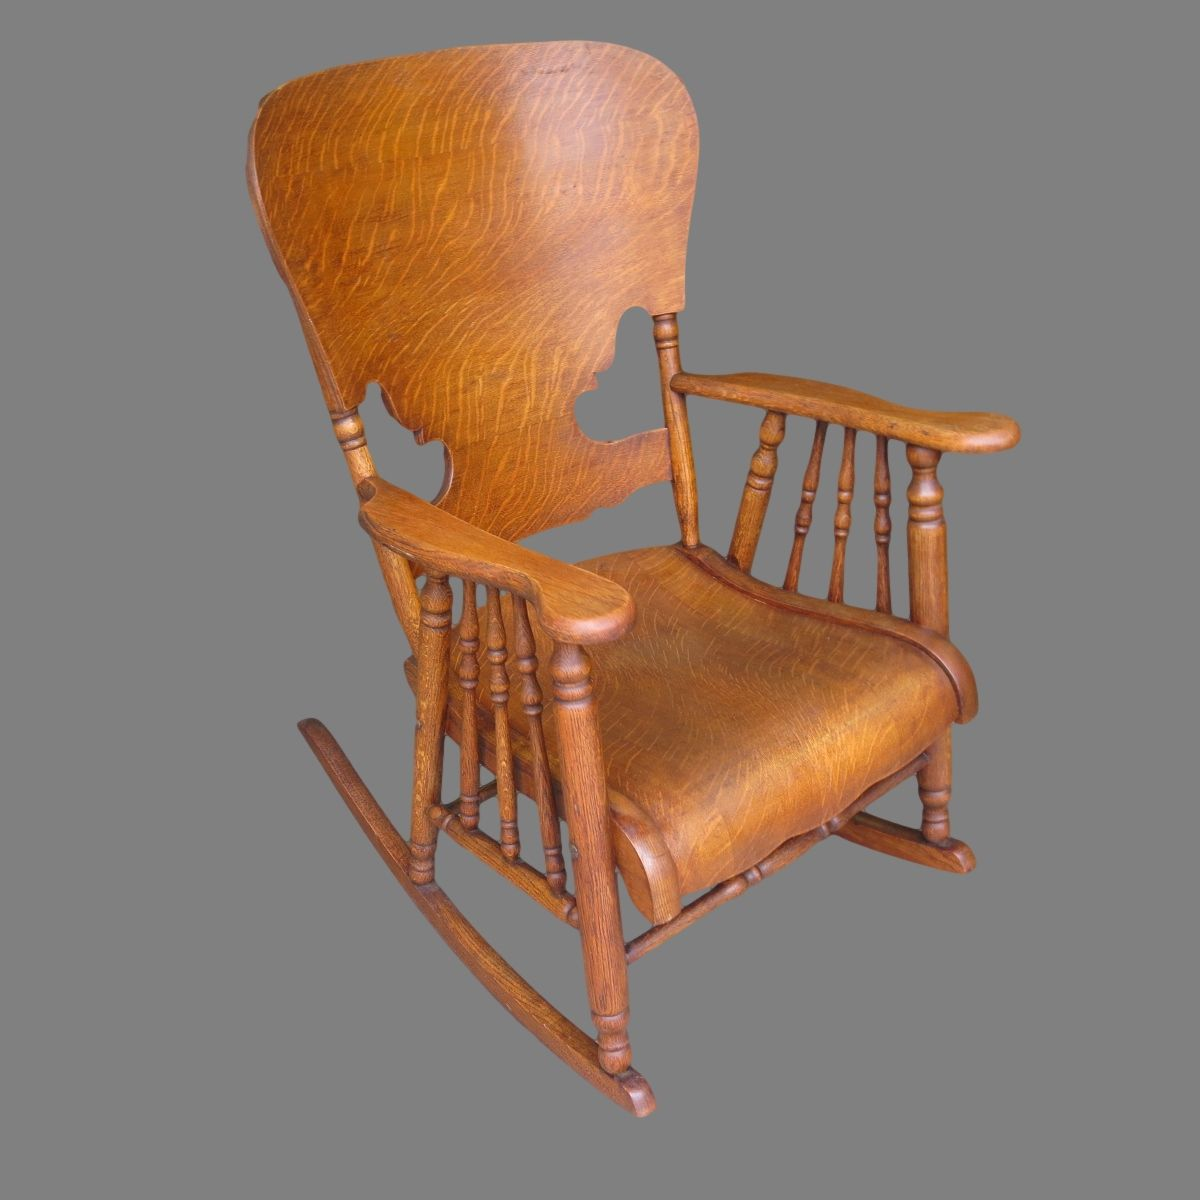 American Antique Press Back Rocking Chair Antique Furniture - American Antique Press Back Rocking Chair Antique Furniture